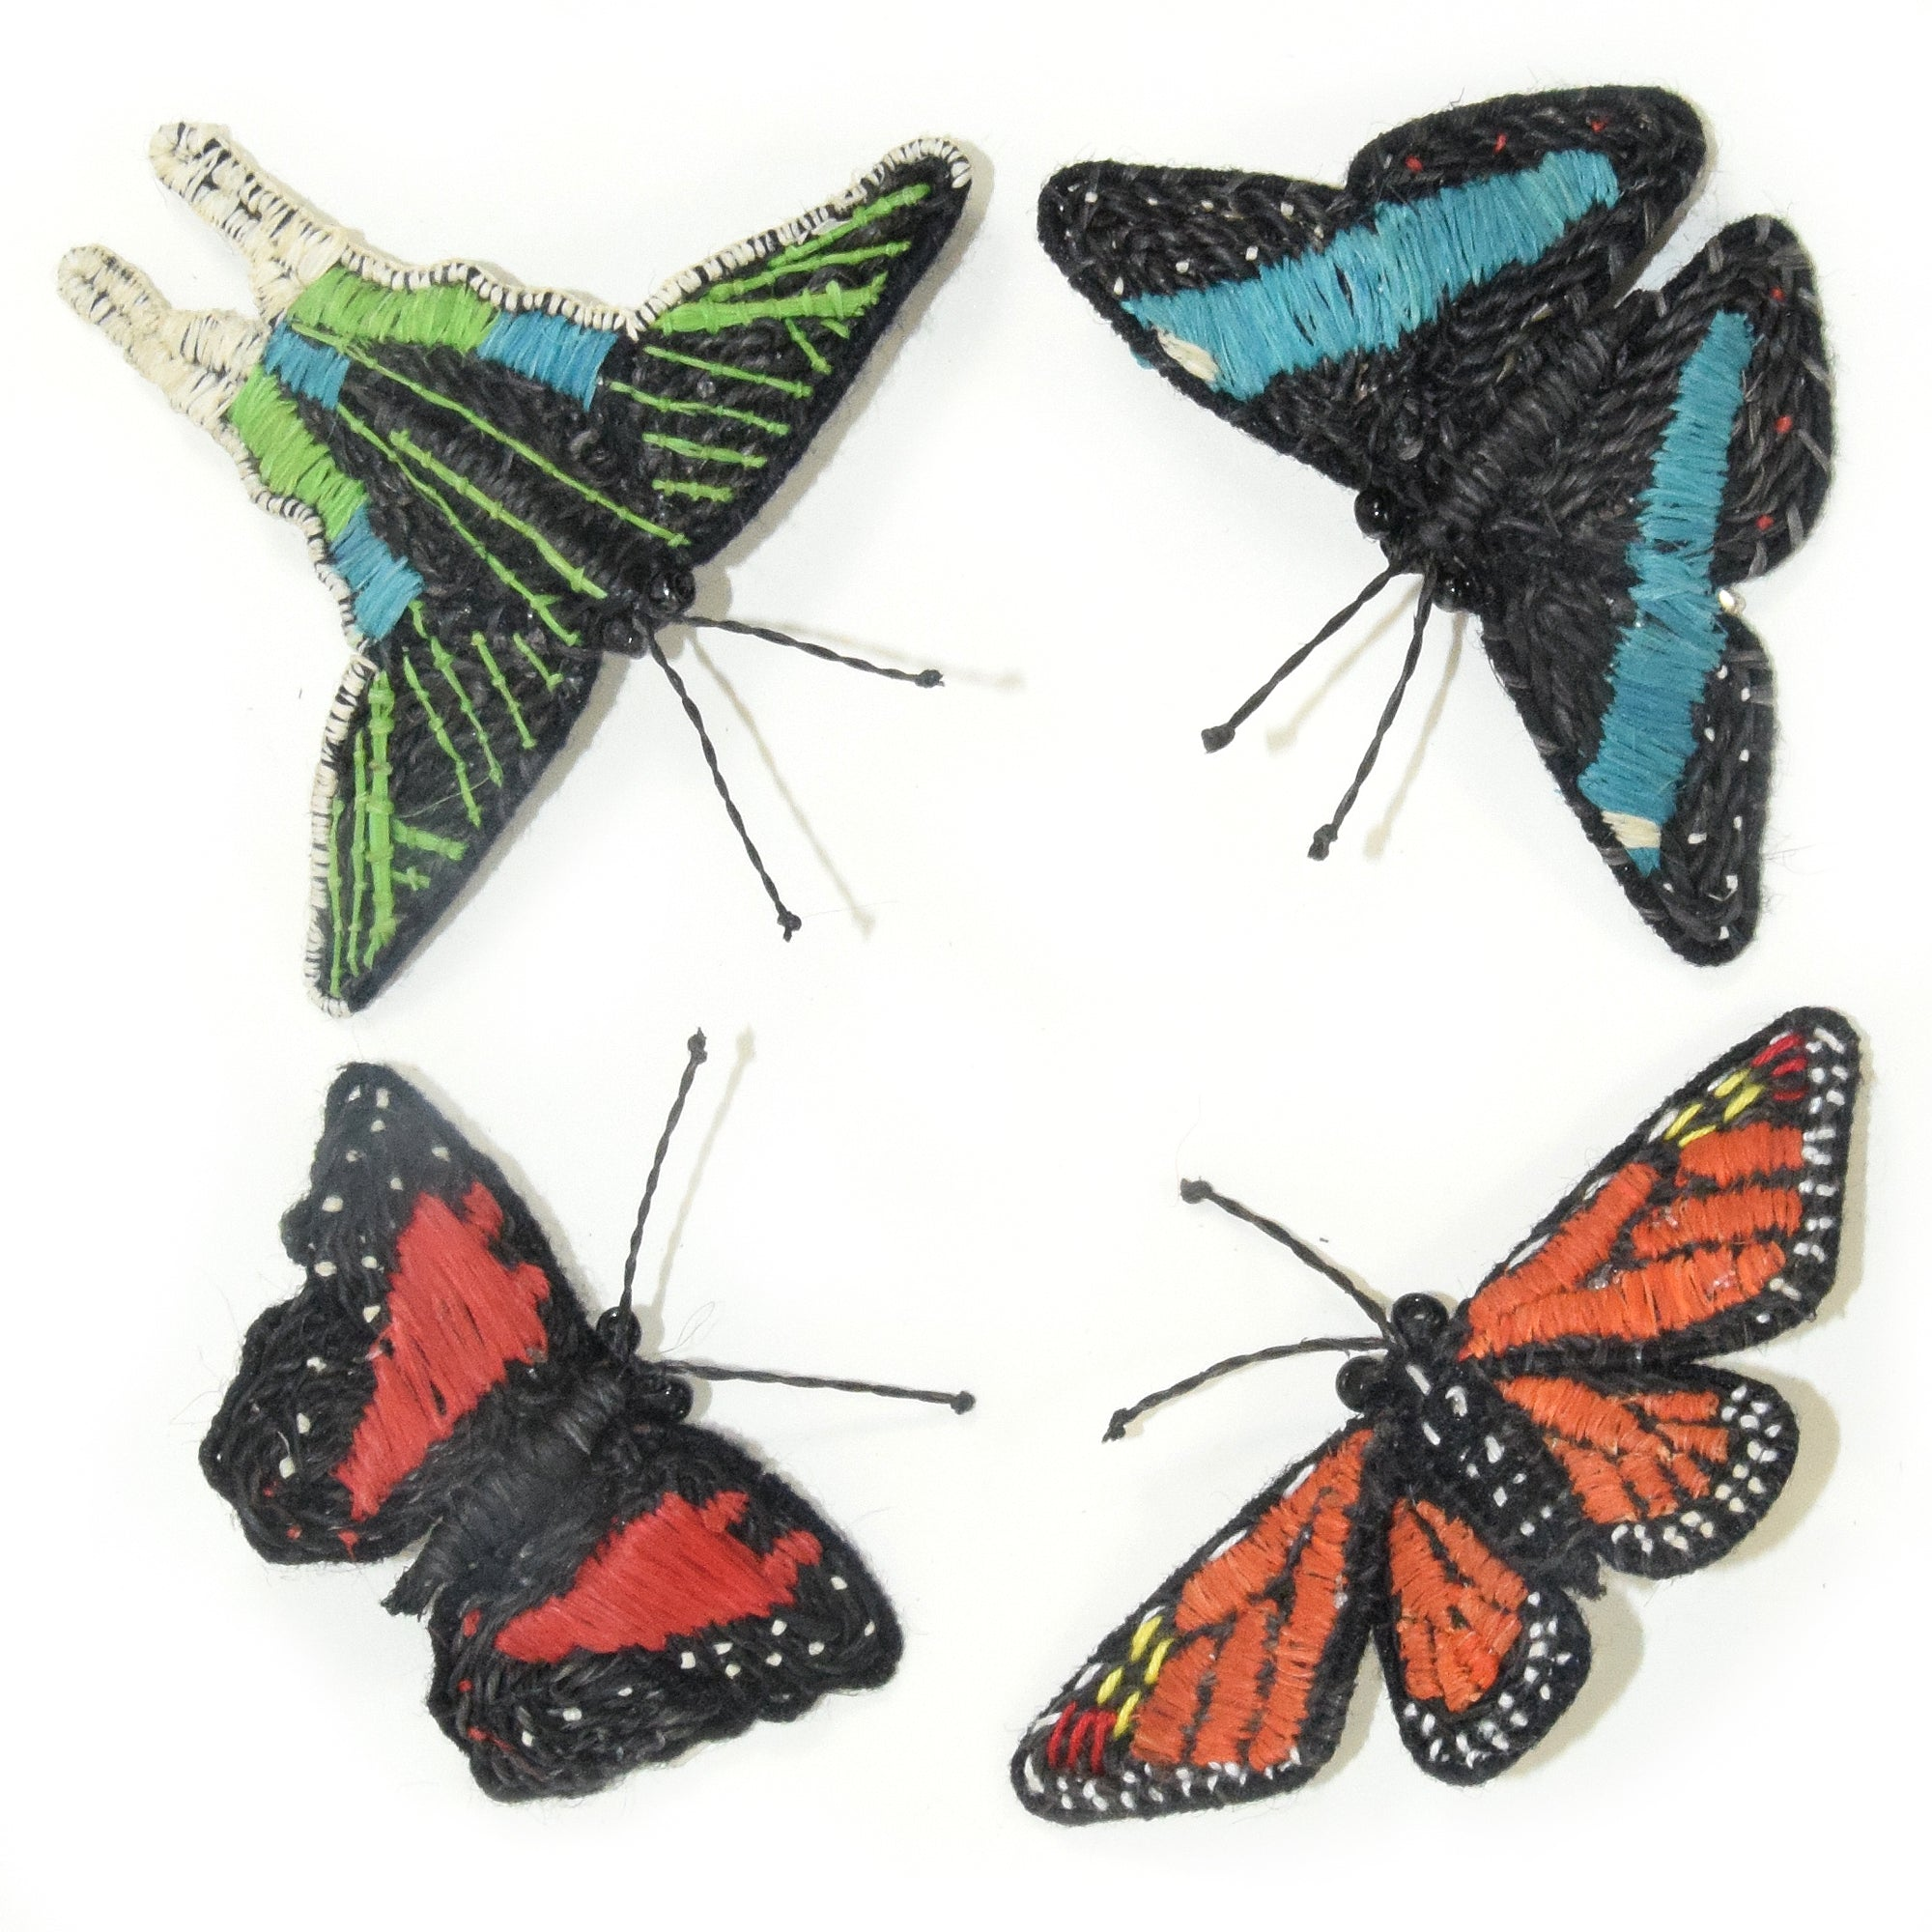 Hand-made butterfly barrettes and ornaments